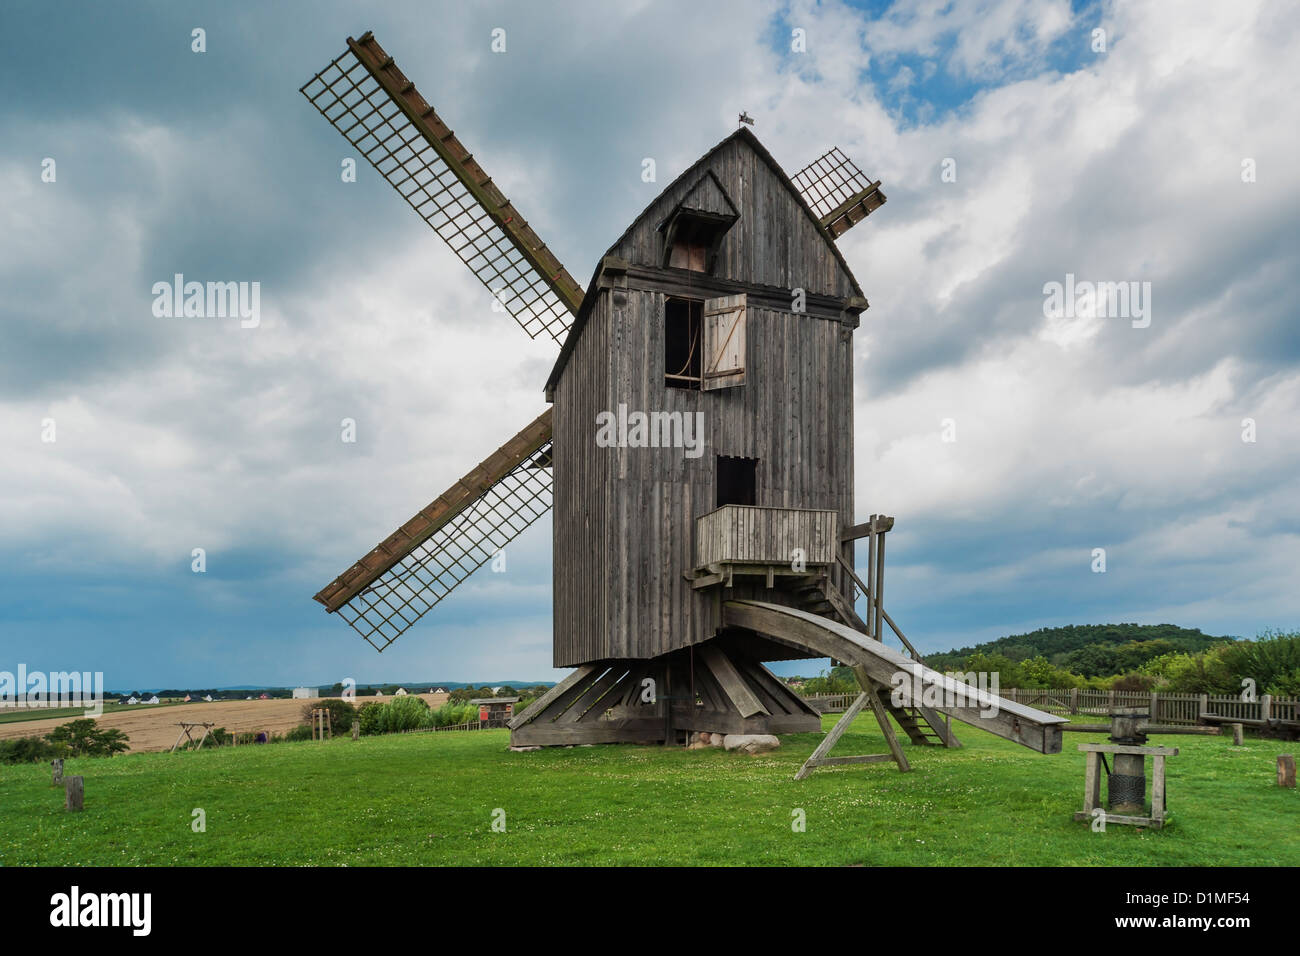 In 1779 built windmill, post mill, Pudagla, Usedom Island, County Vorpommern-Greifswald, Mecklenburg-Western Pomerania, - Stock Image